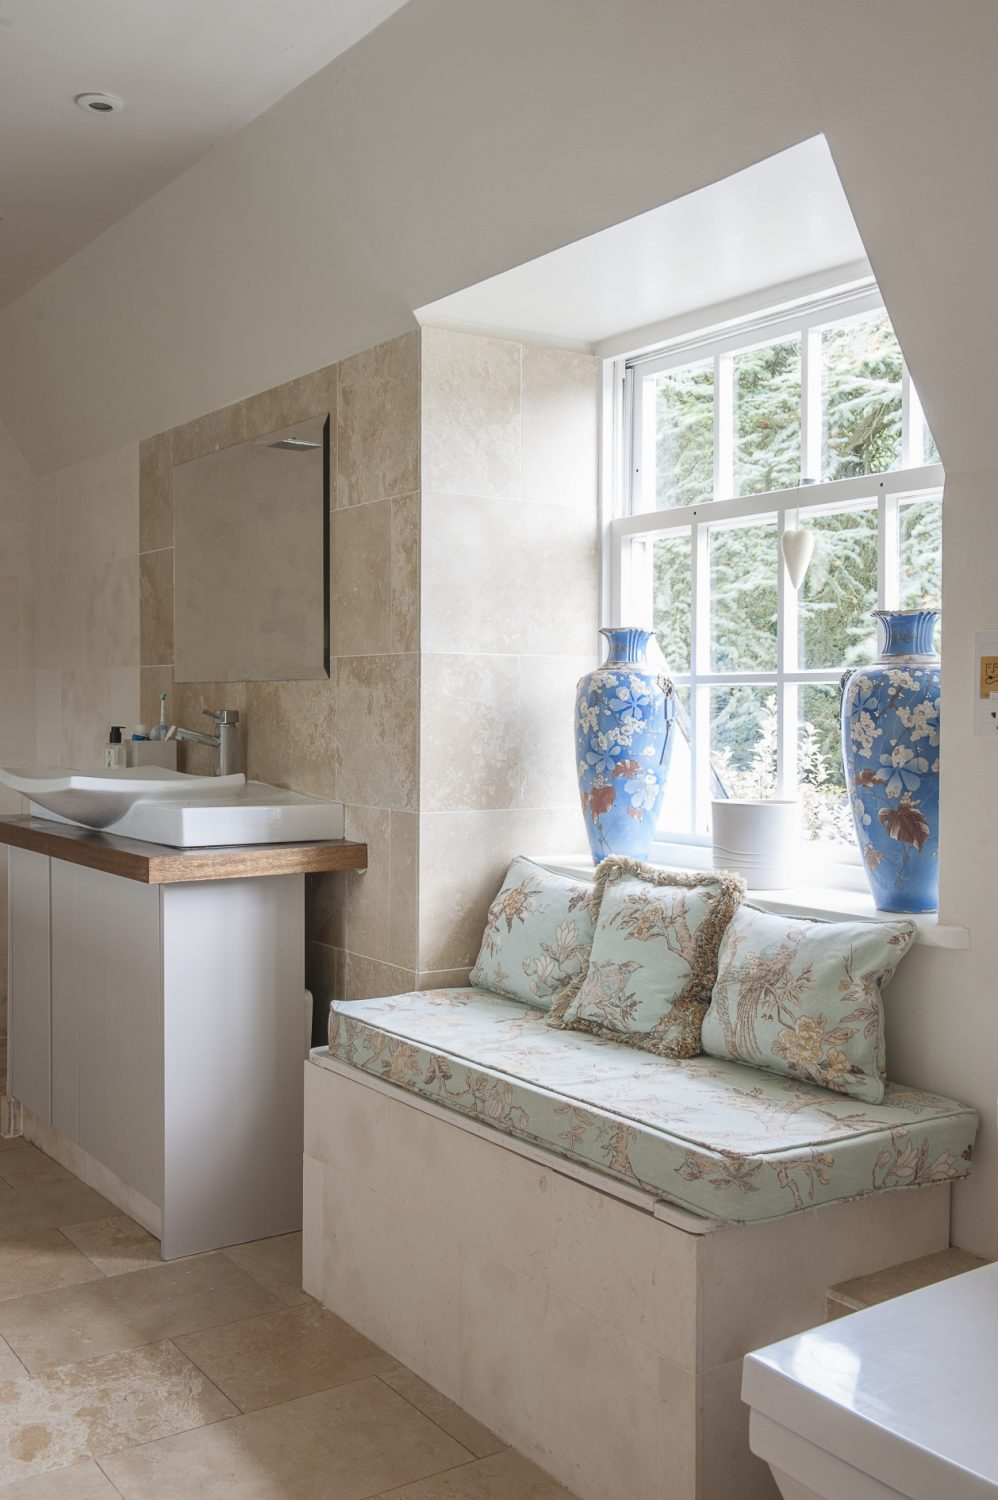 A door to one side leads into a wet room, where a window seat is upholstered in a duck egg blue GP & J Baker print, above which sit Chinese vases